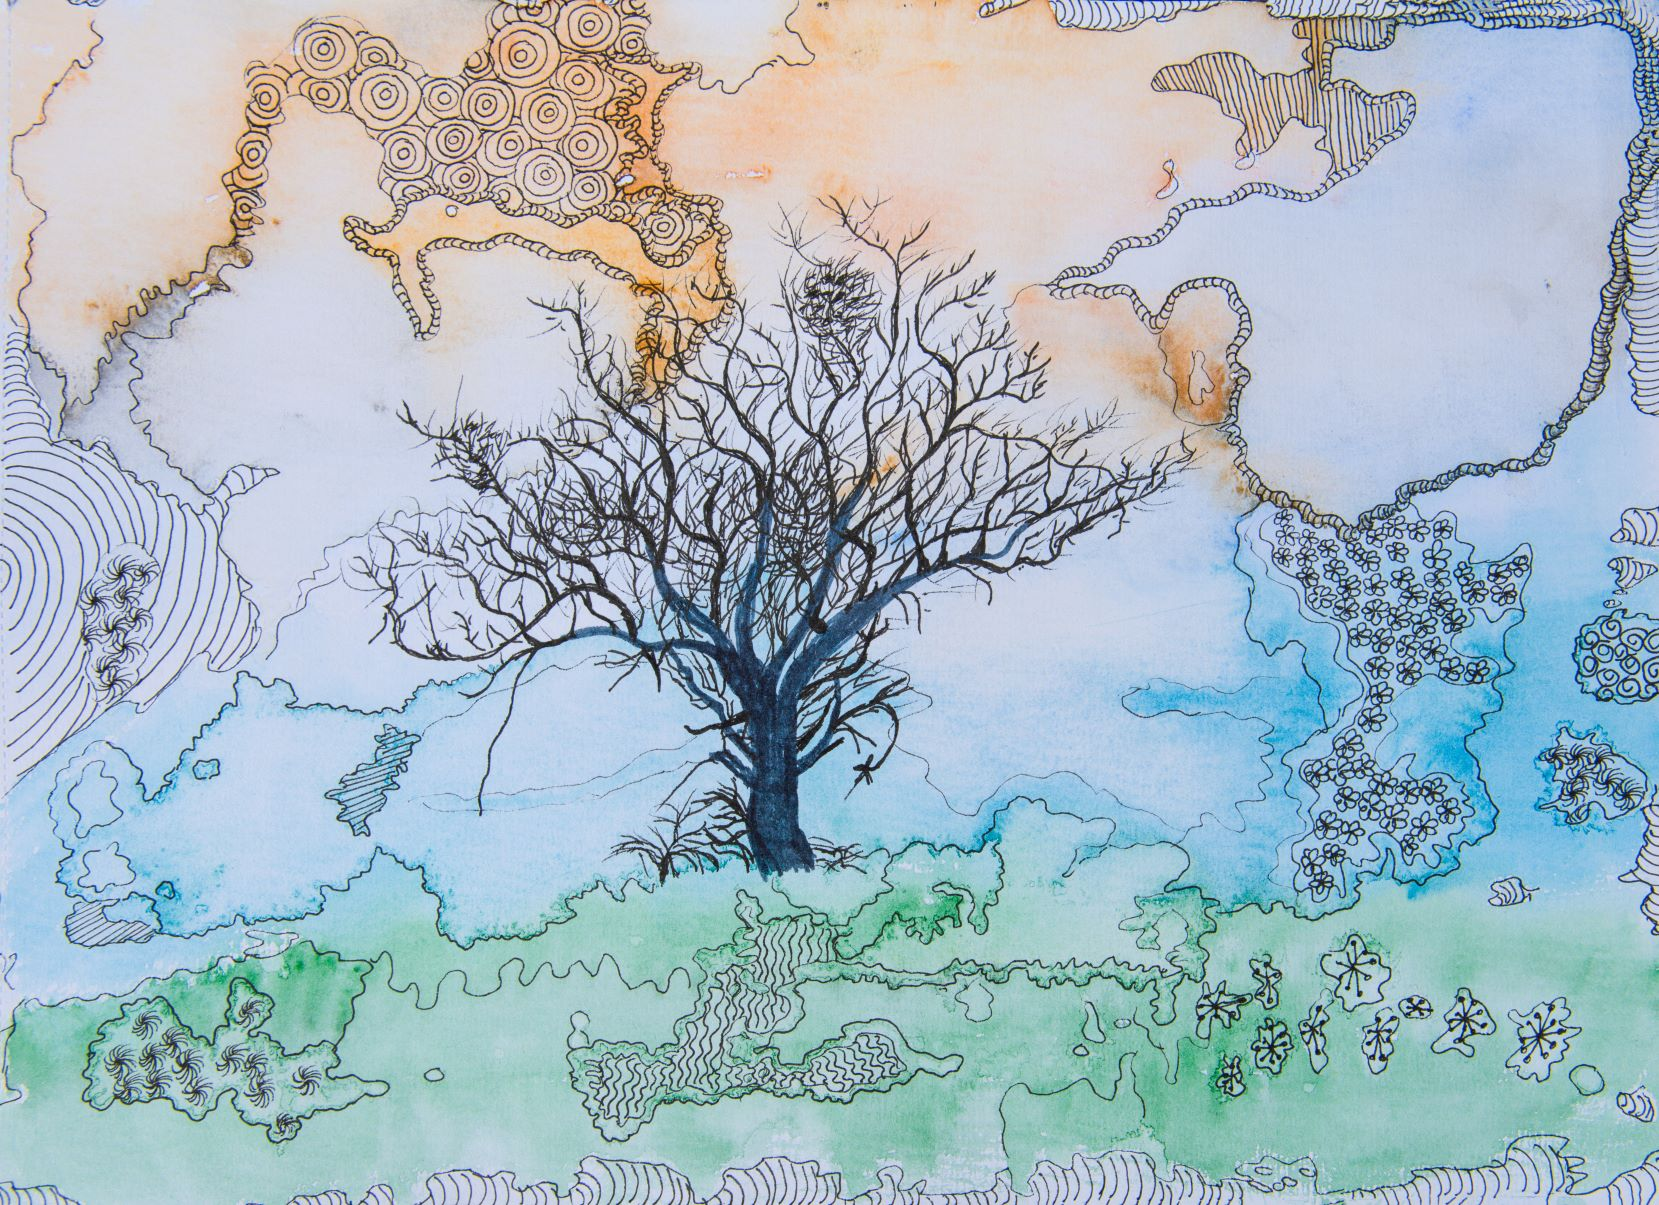 Sally Saint Art -  tree on a hill.jpg m.jpg